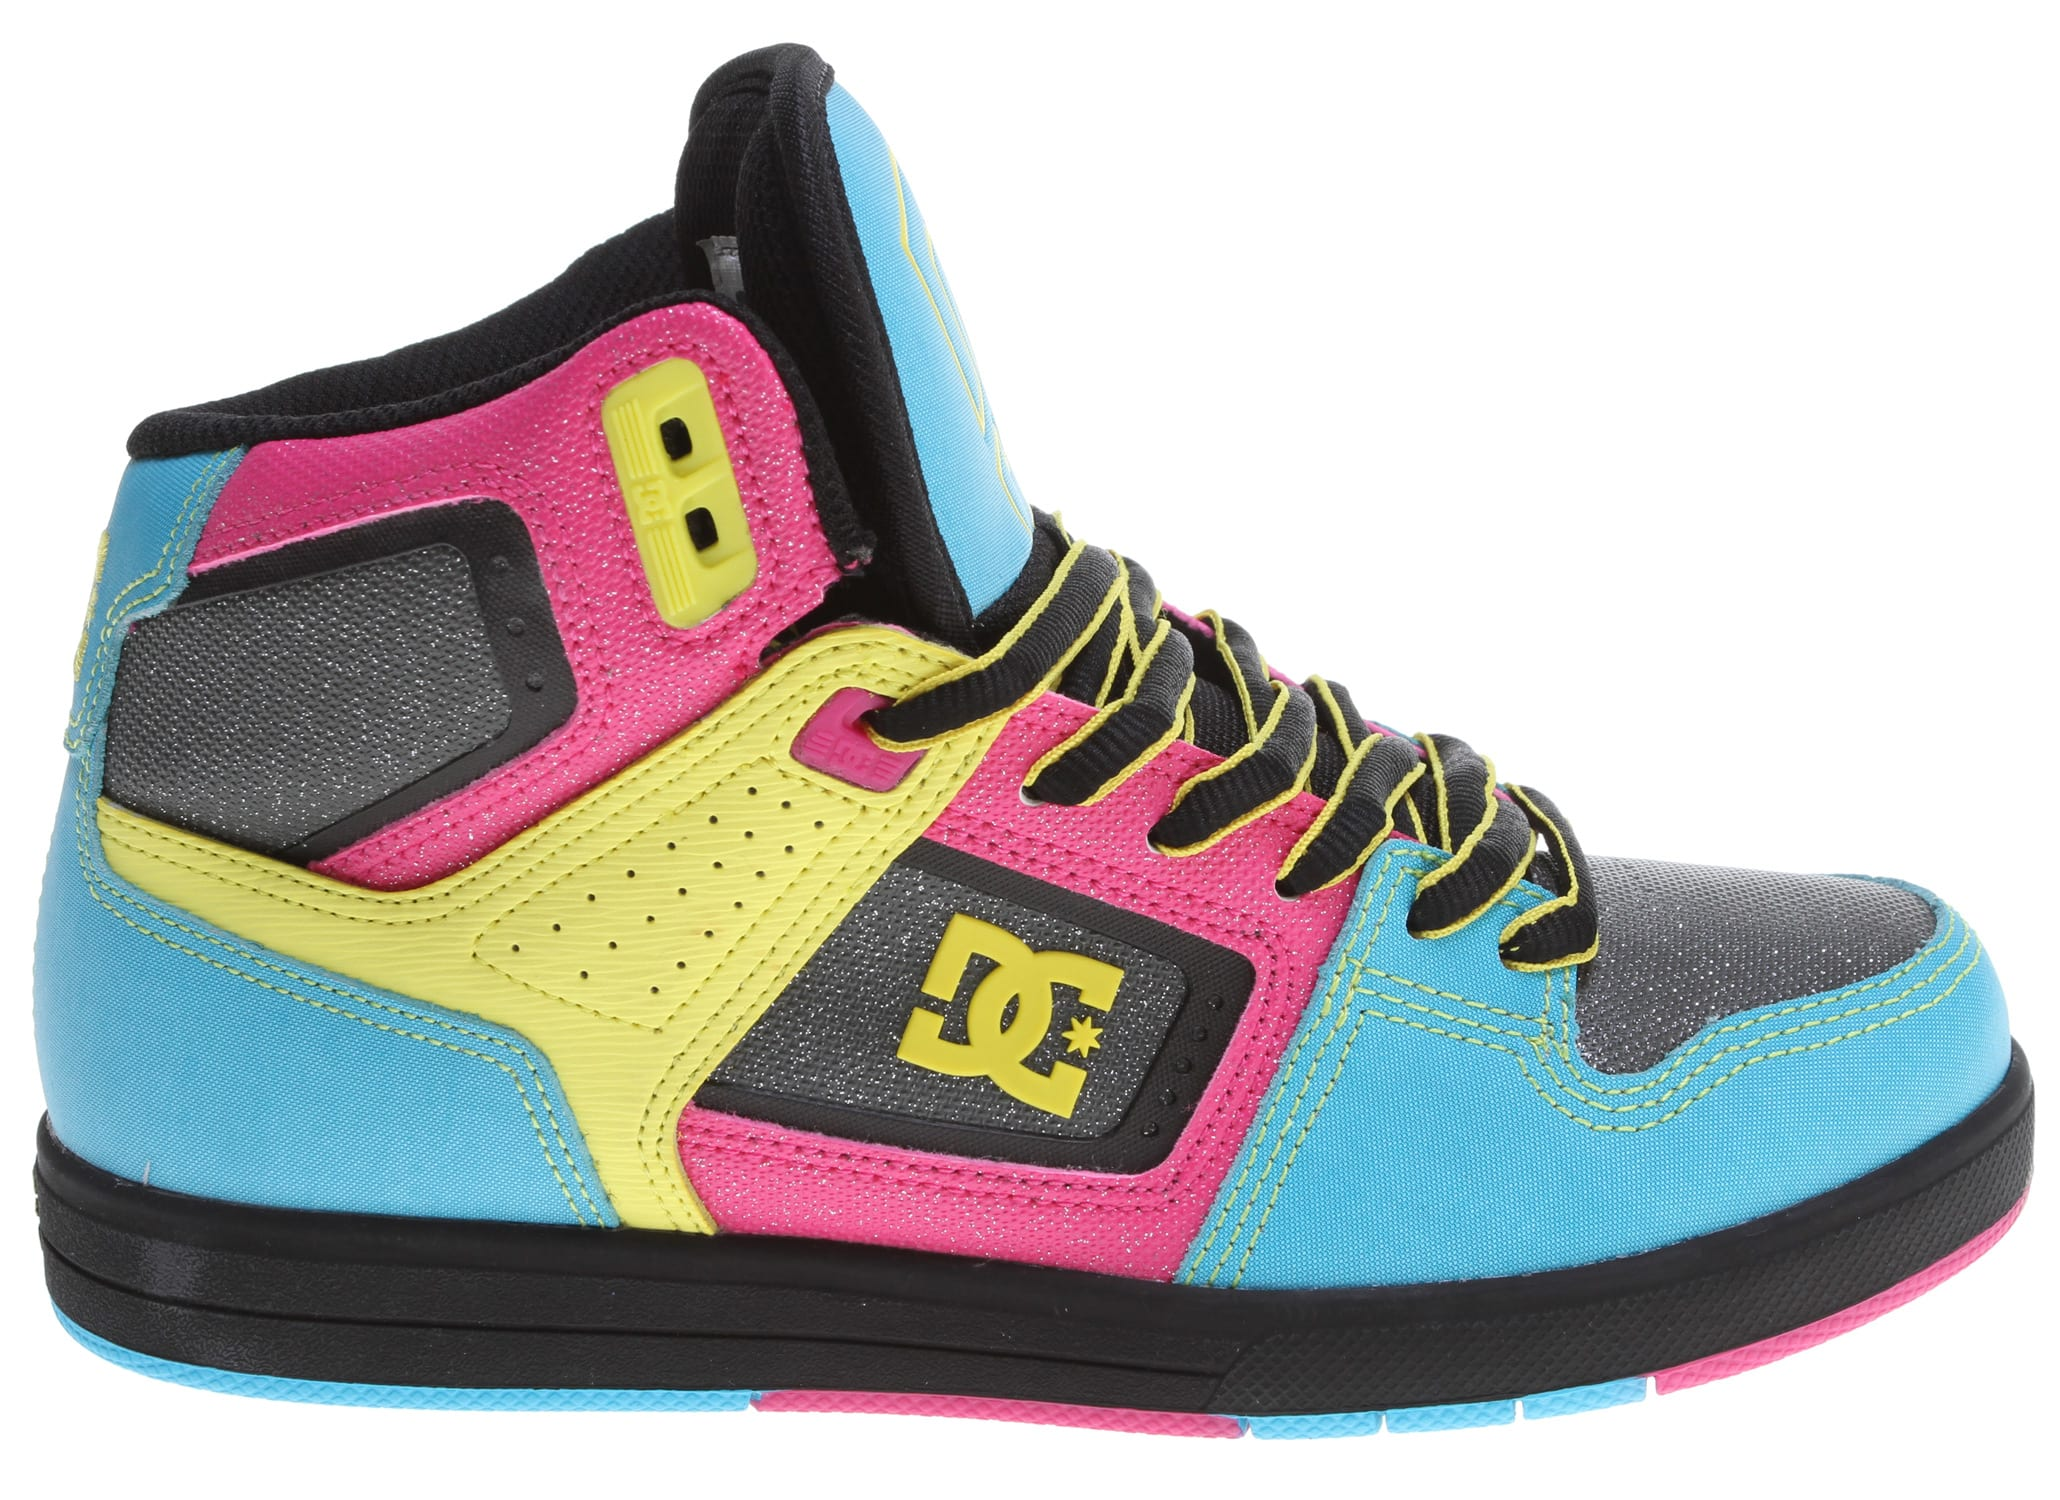 Womens Discount Skate Shoes - Cheap Womens Skate Shoes | Save up